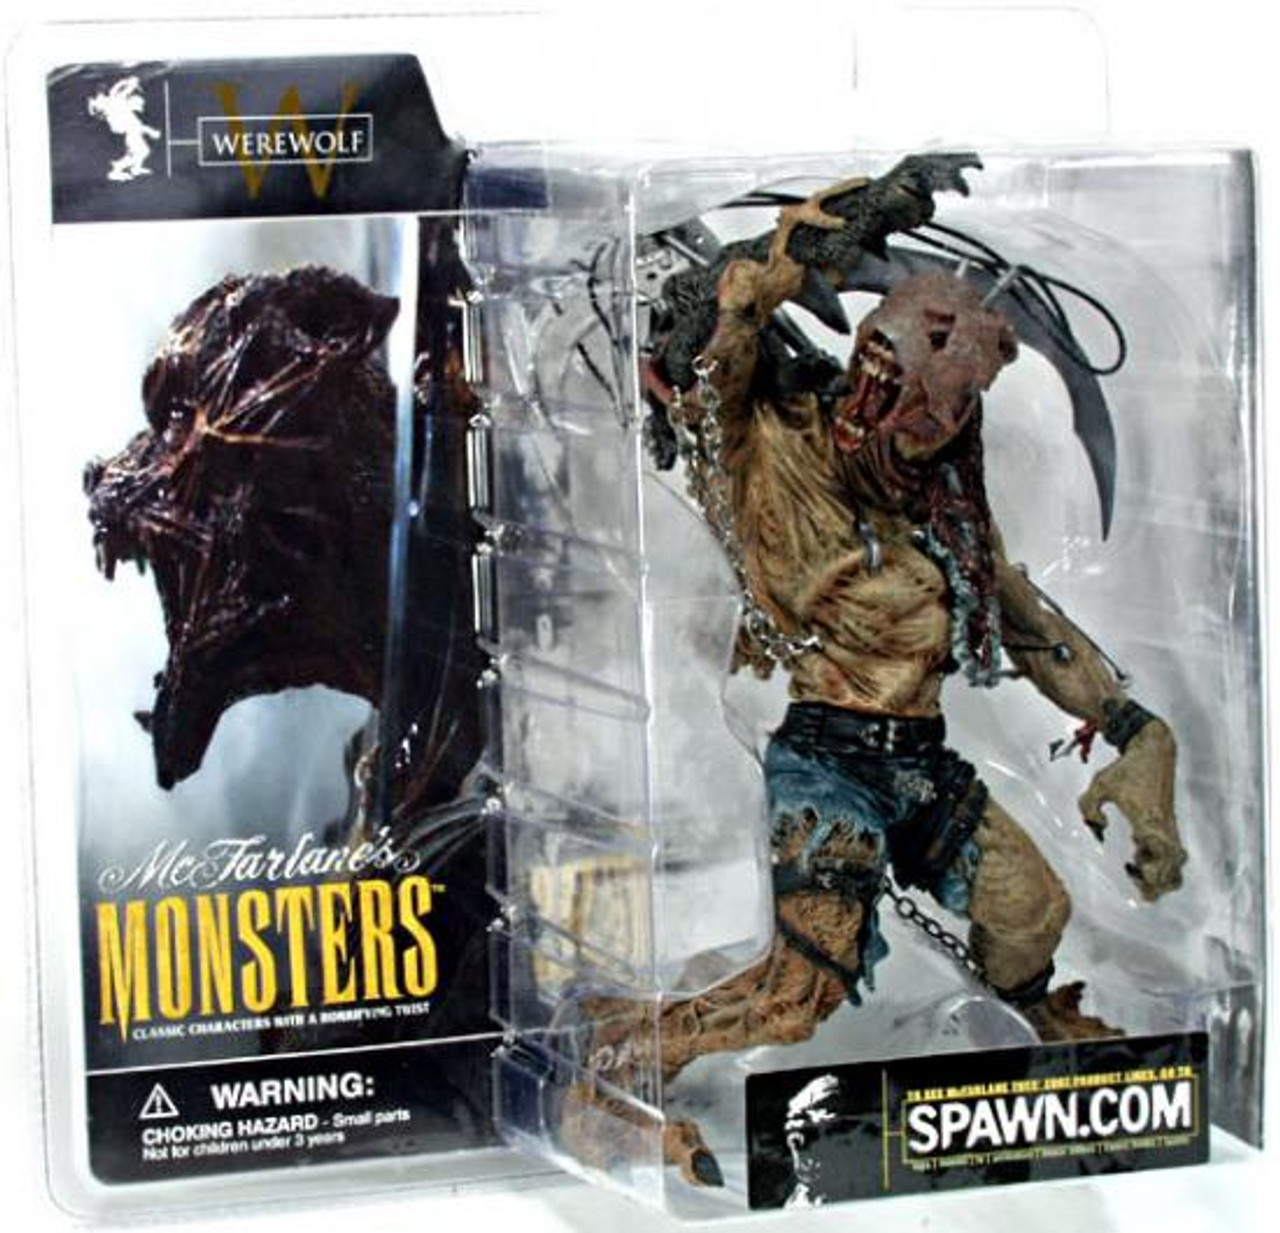 McFarlane Toys McFarlane's Monsters Series 1 Werewolf Action Figure [Clean Package]